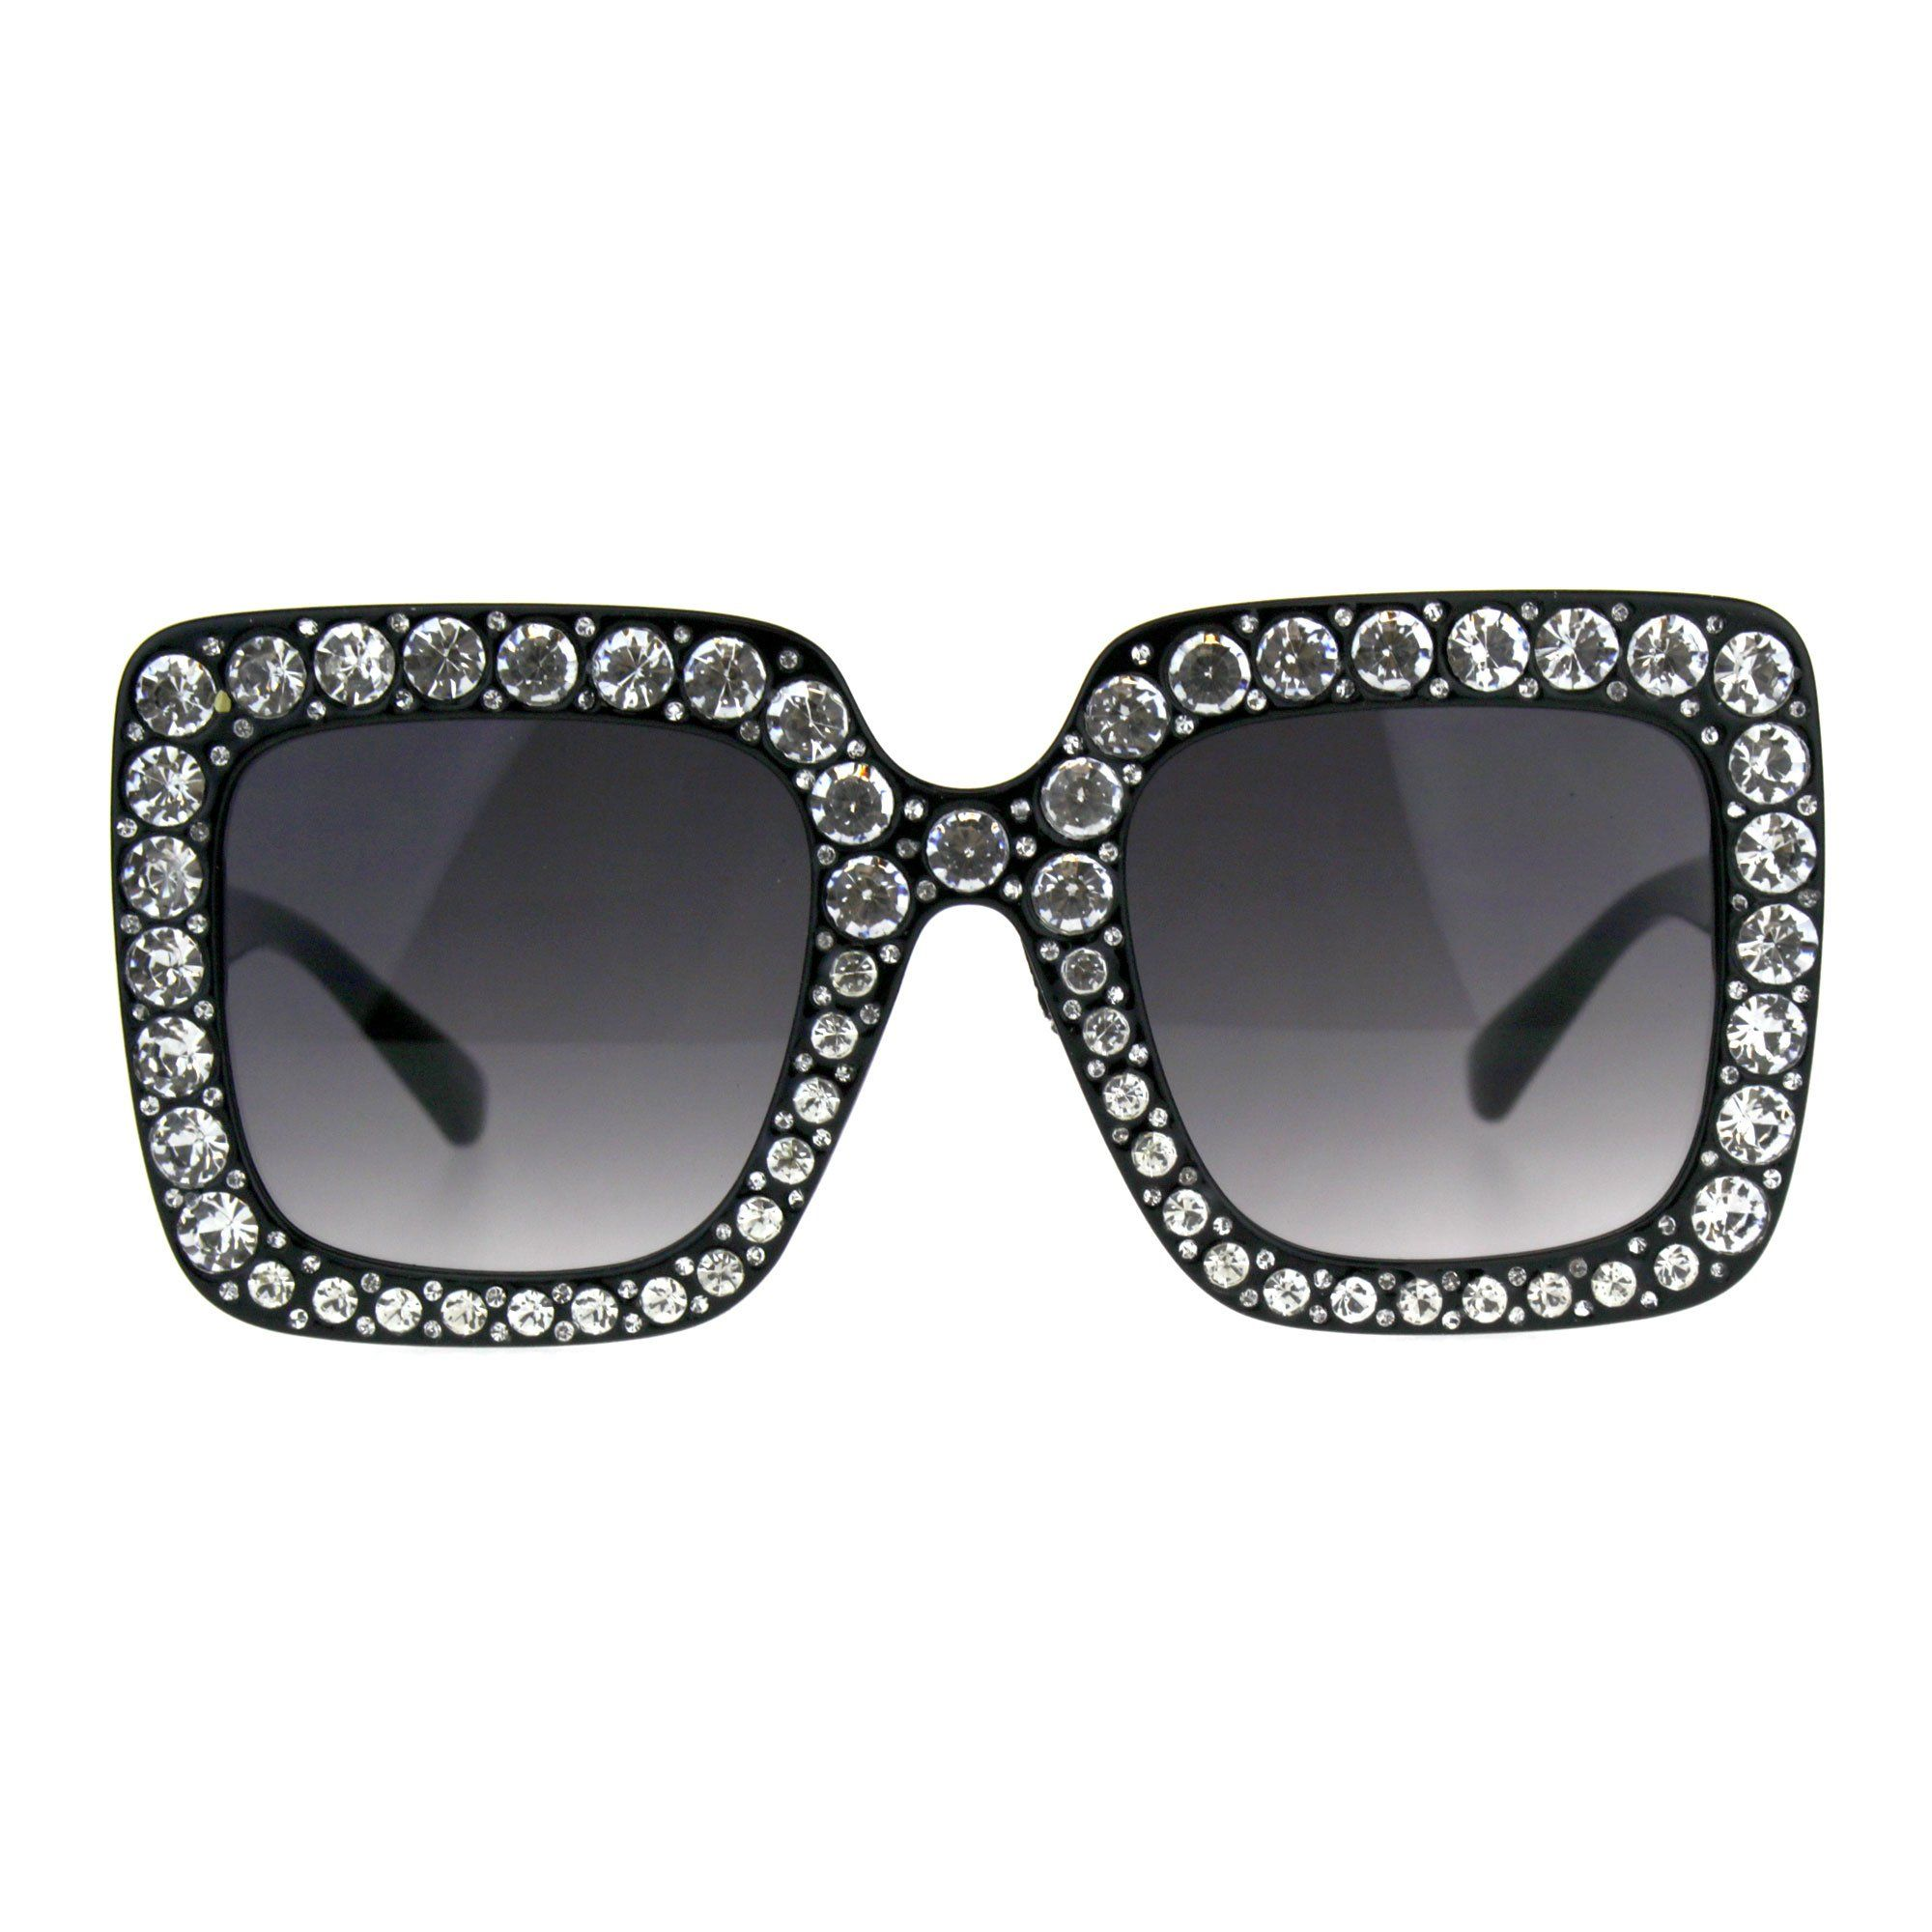 8af4f9032 Blinged Out Rhinestone Sunglasses Womens Super Oversized Square Shades -  Measurements: 5 3/4